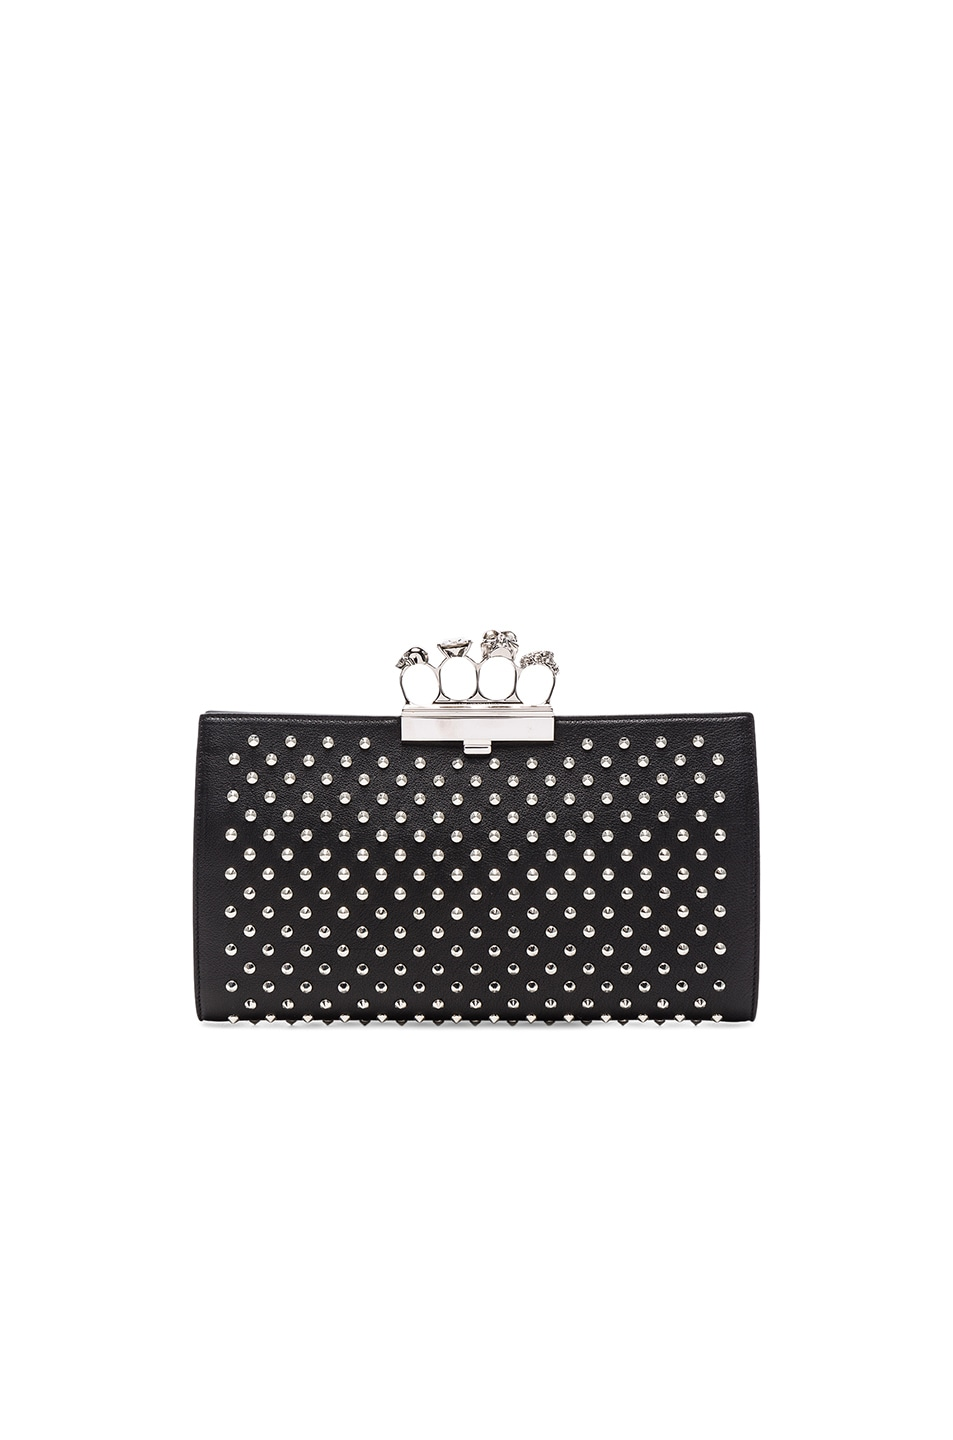 Image 1 of Alexander McQueen Flat Pouch Leather in Black